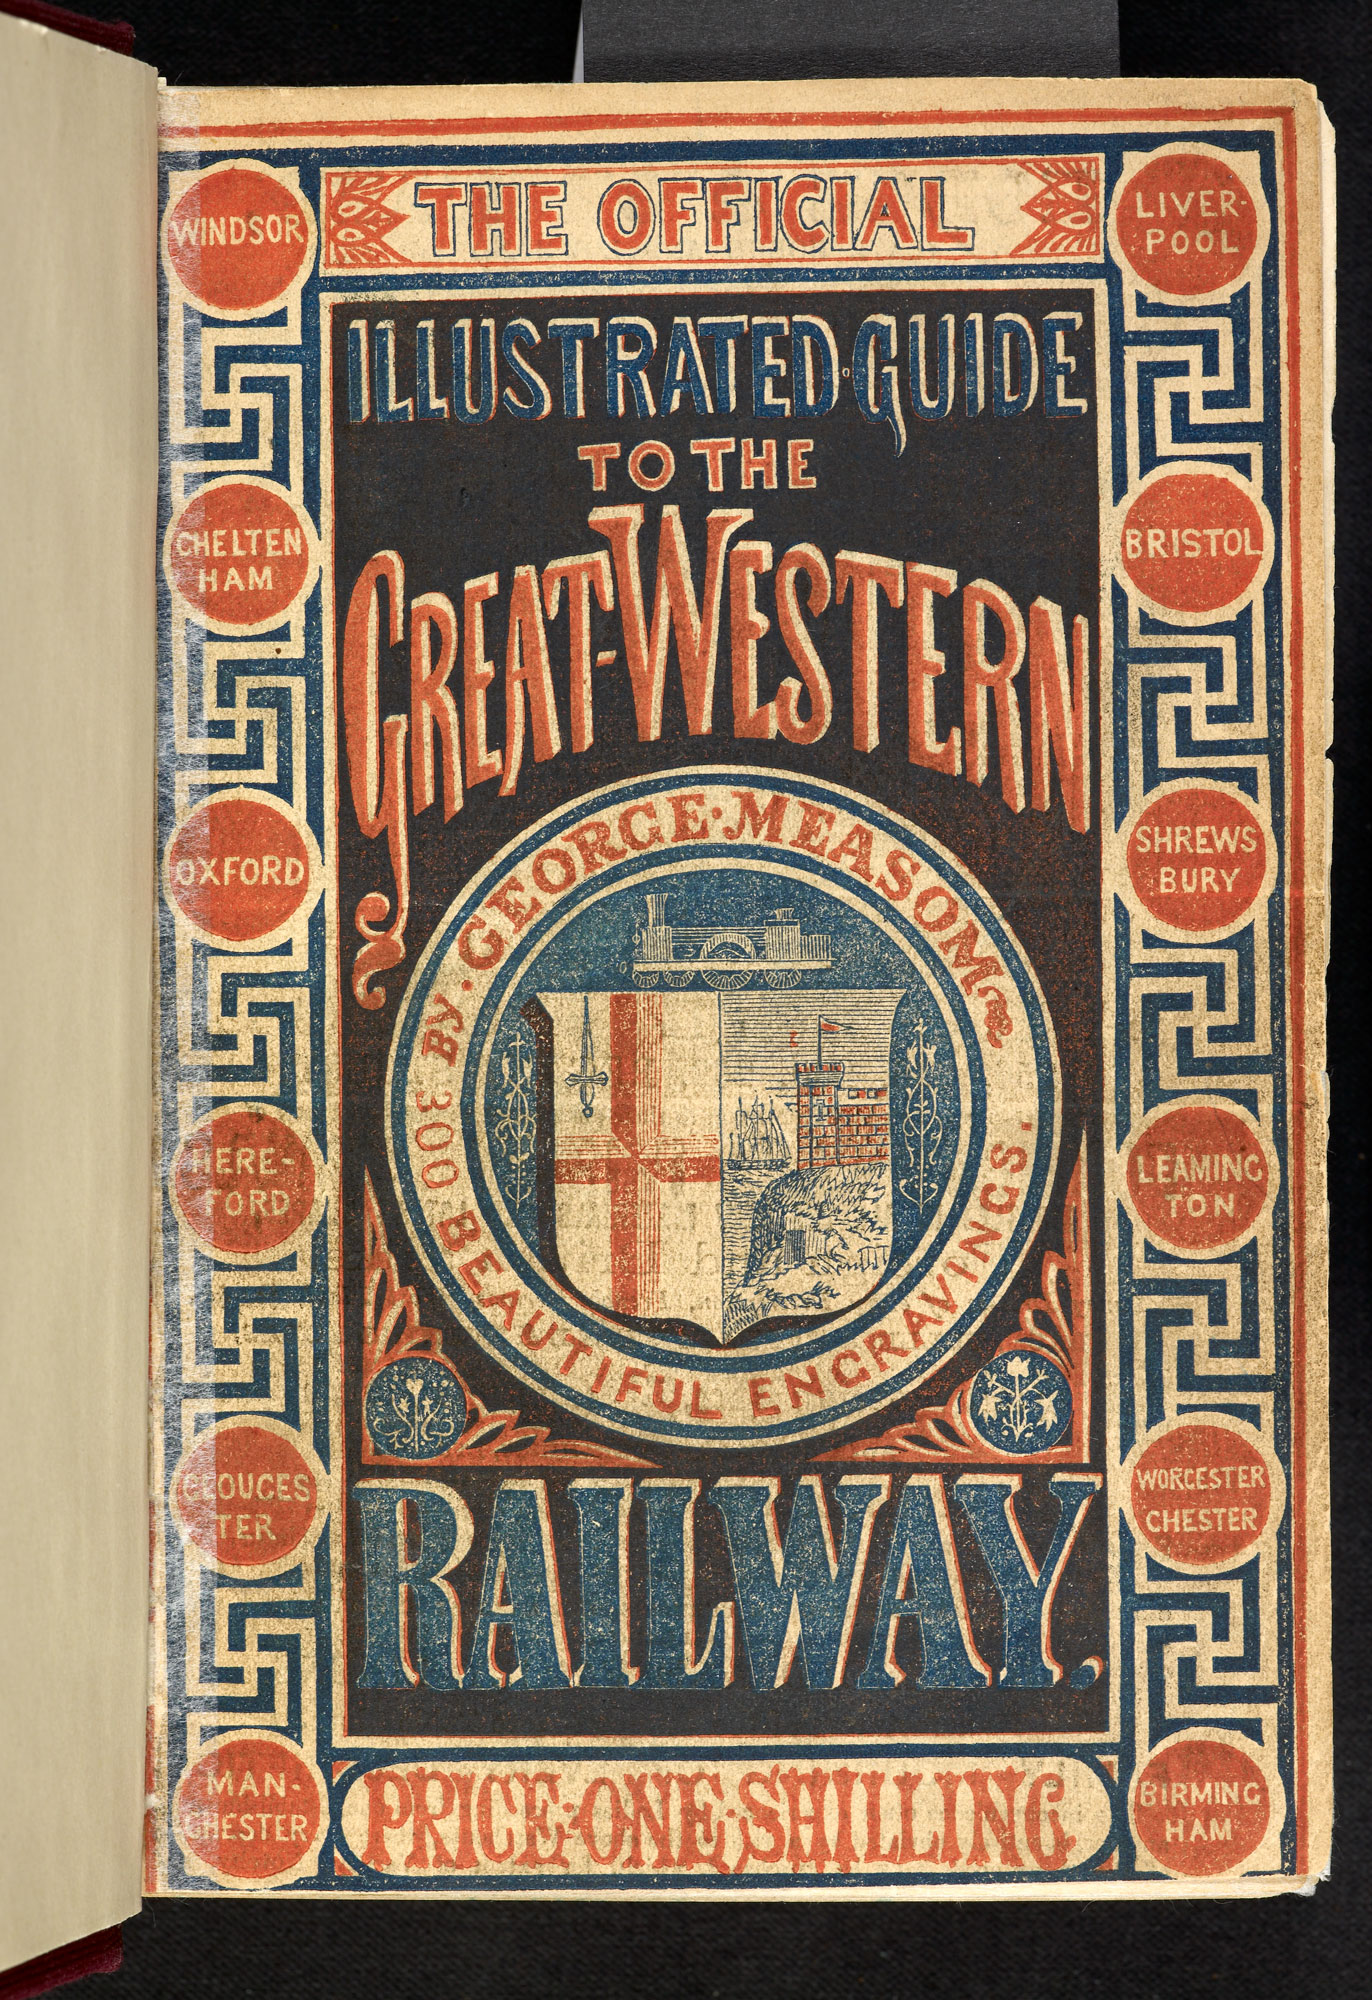 The Official Illustrated Guide to the Great Western Railway